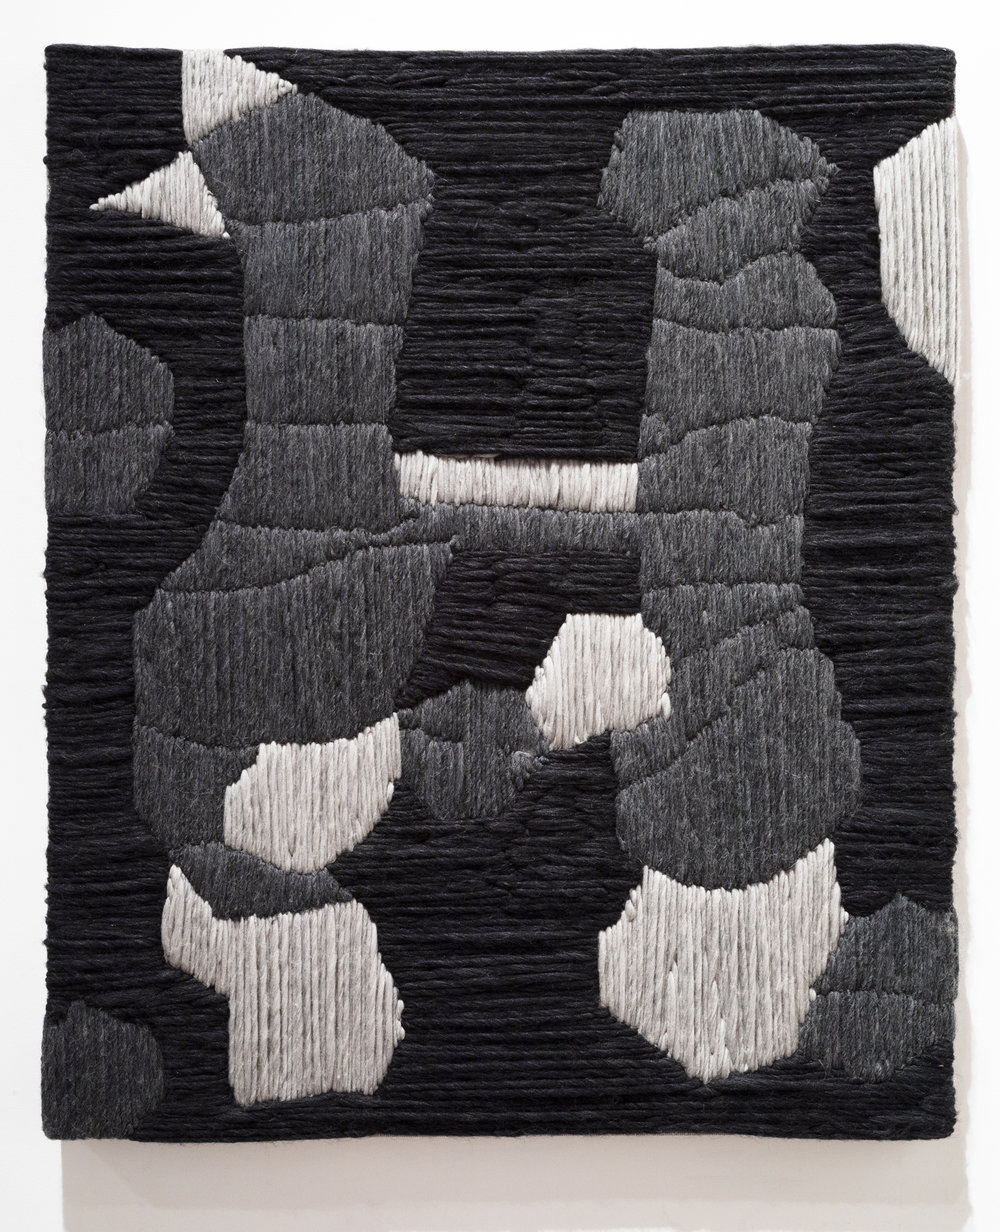 System 29 2017 Wool and Linen 36 x 30 inches